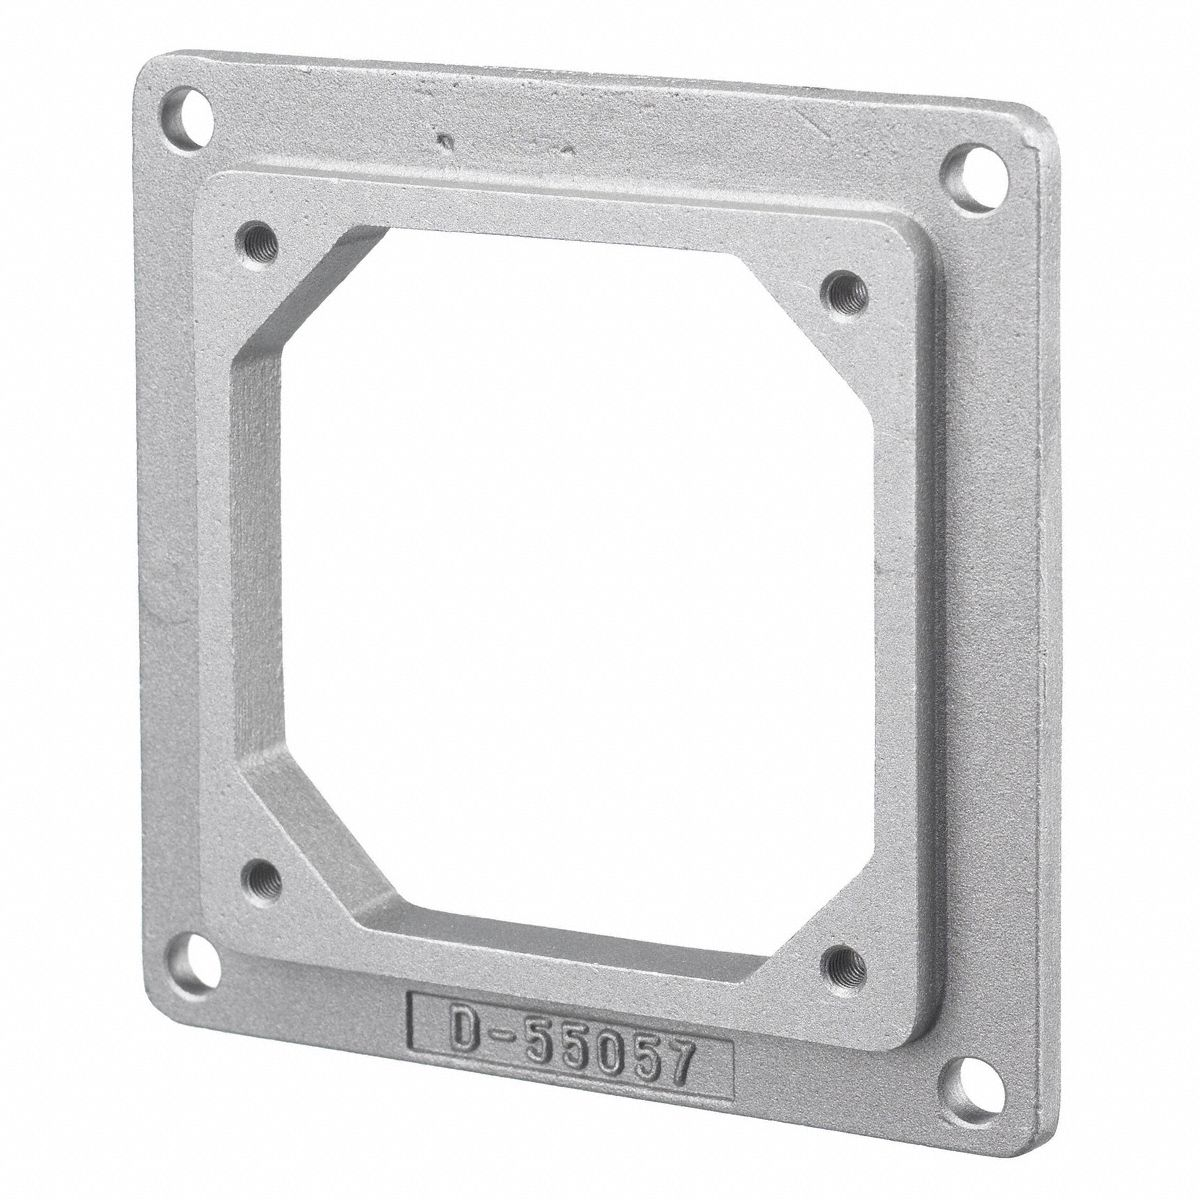 Adapter Plate, For Use With Receptacle Box 3D076, Aluminum